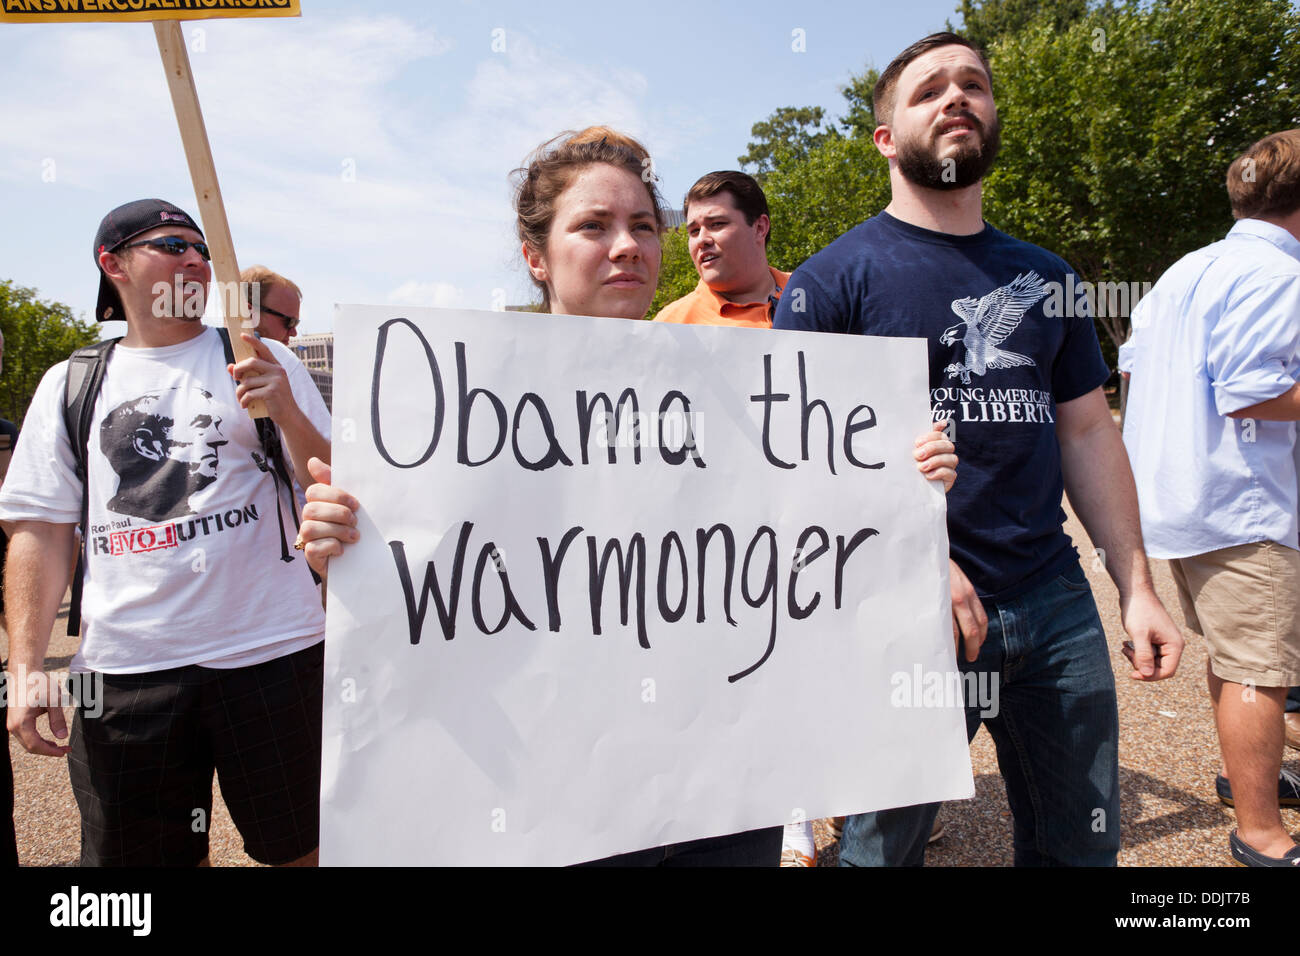 Obama's foreign policy opponent - Washington, DC USA - Stock Image